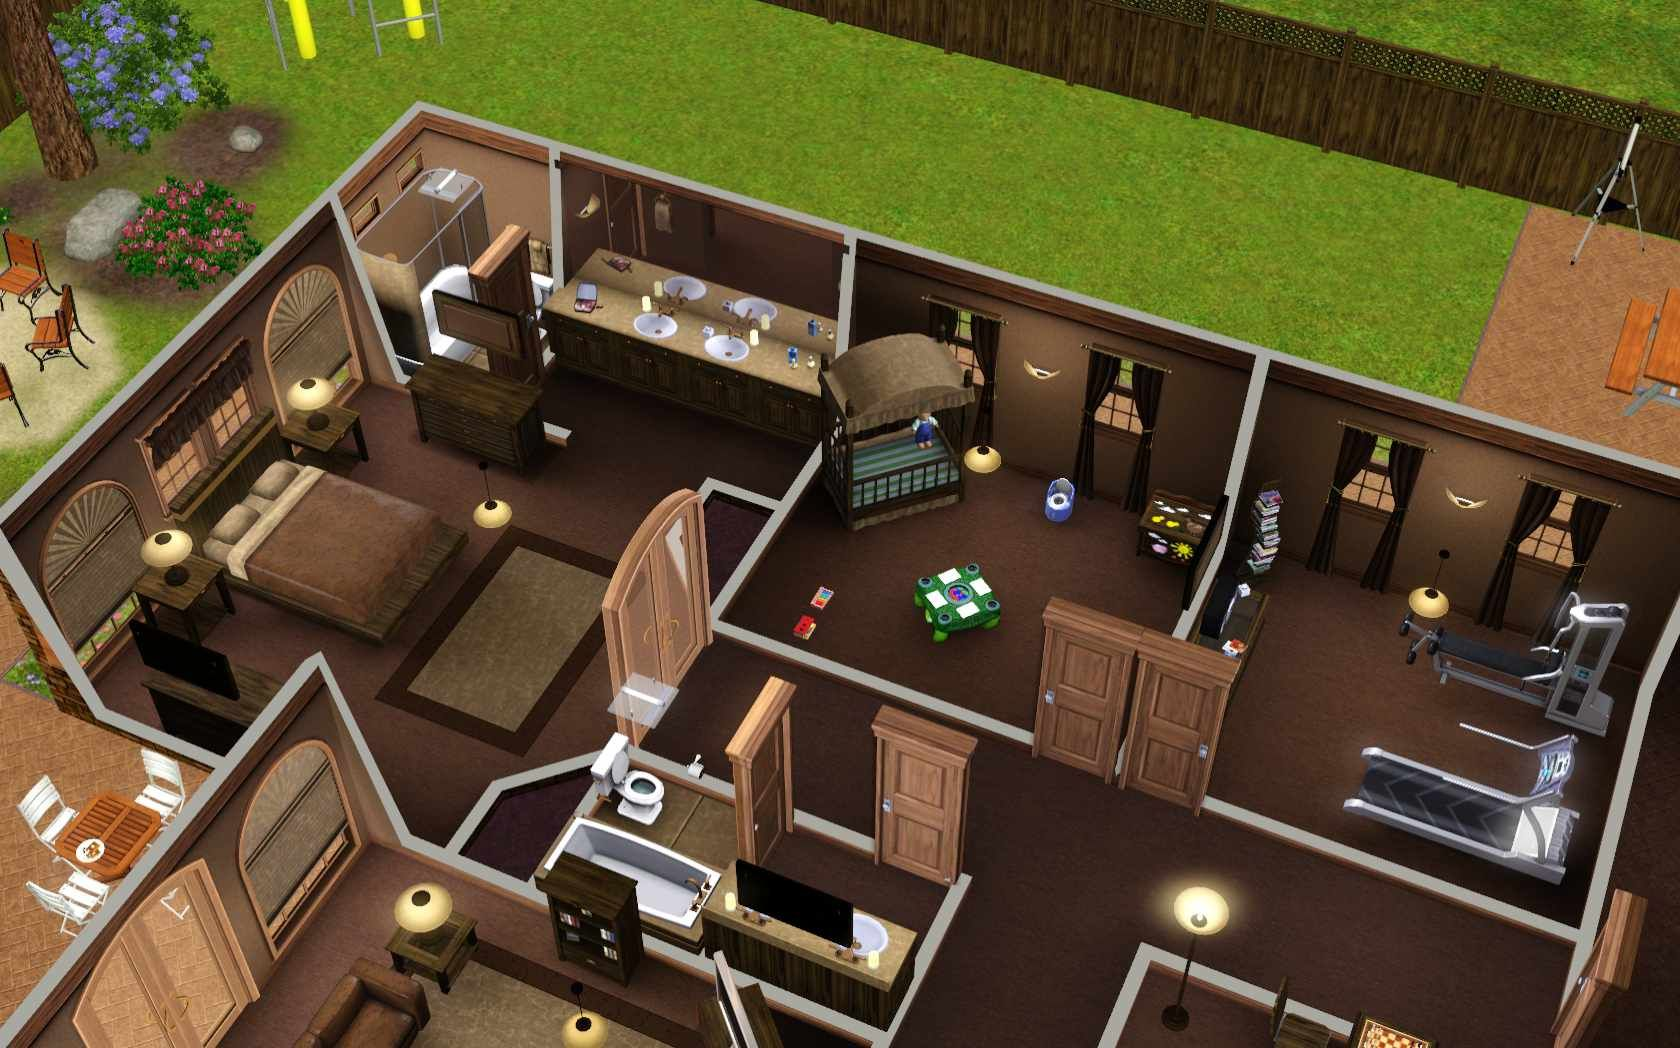 the sims 3 home building and design sims home ideas pinterest the sims 3 home building and design